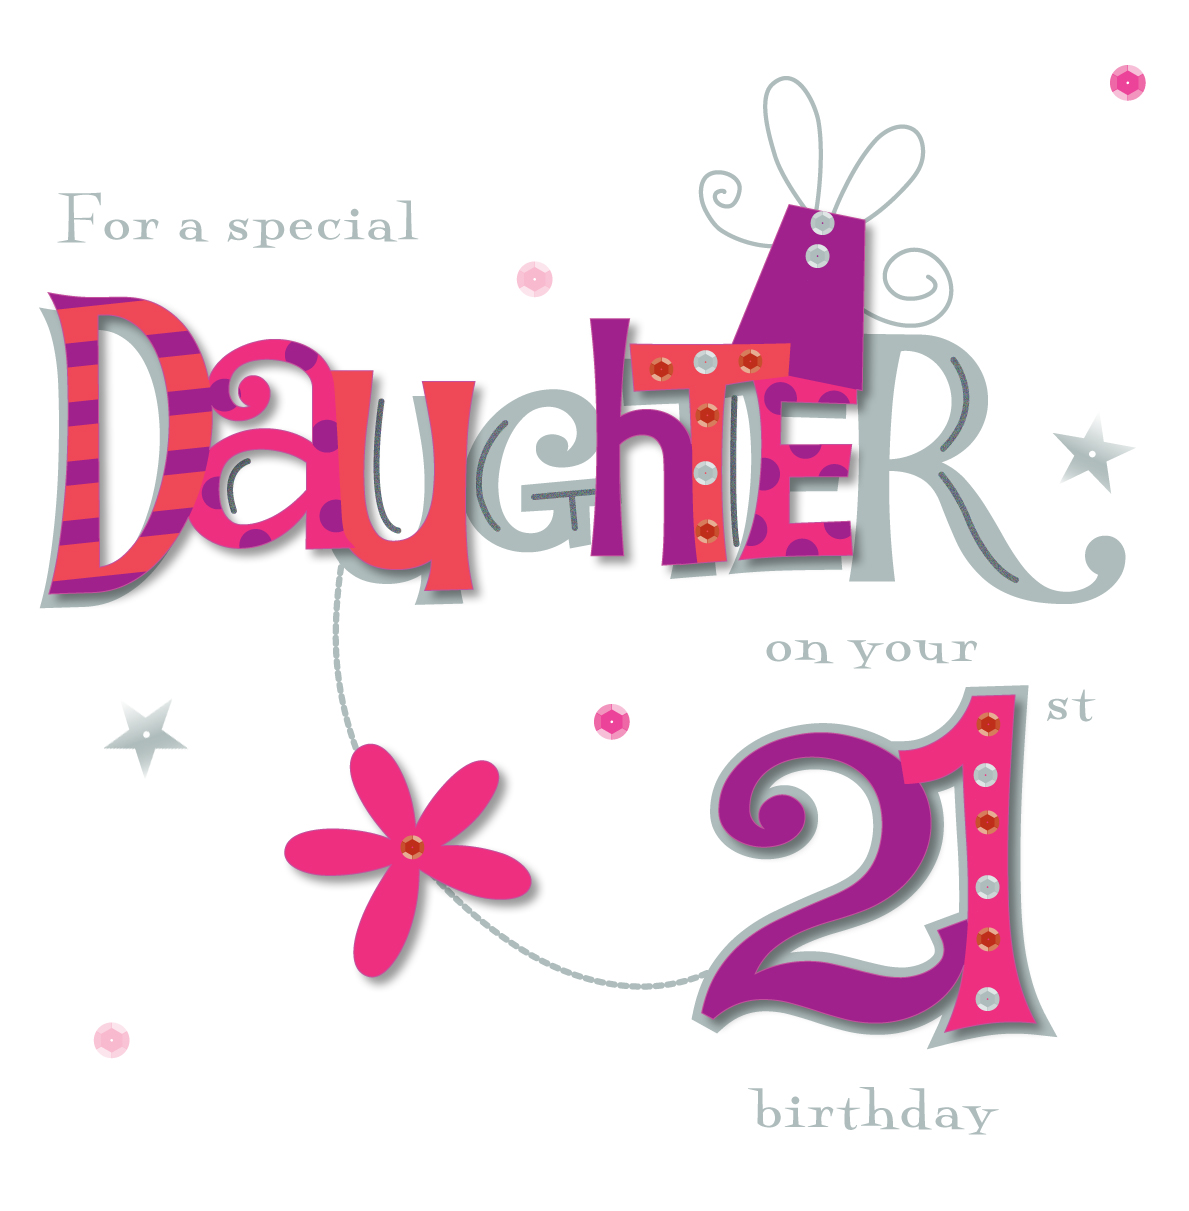 Daughter on your 21st birthday greeting card cards love kates daughter on your 21st birthday greeting card bookmarktalkfo Image collections